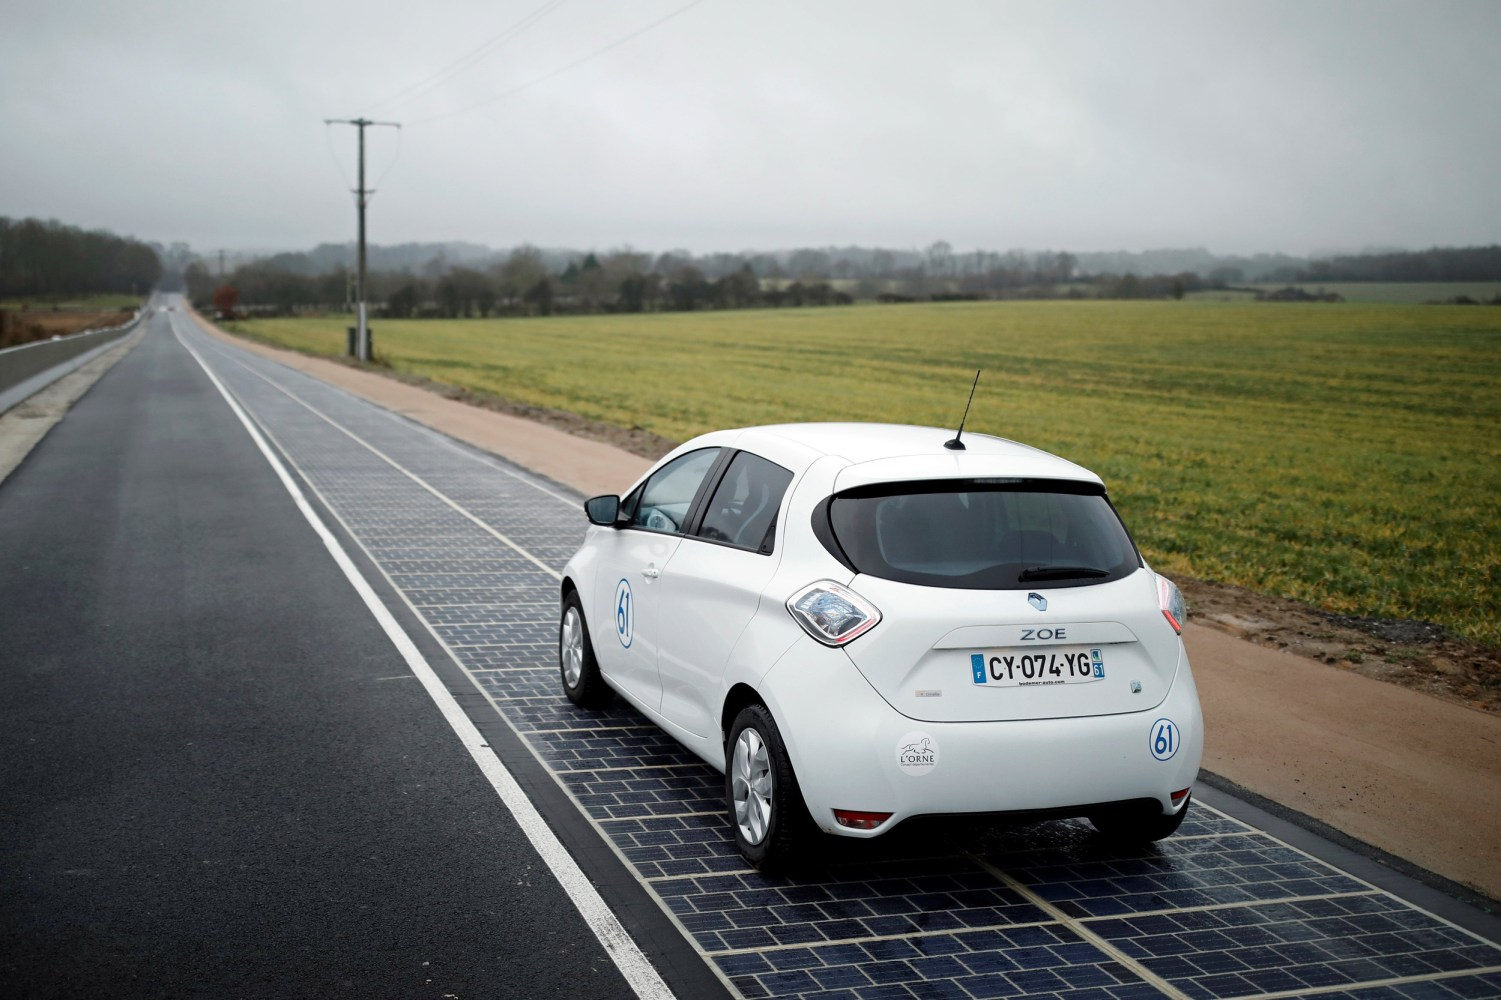 World's First Solar Panel Road Opens Up in Normandy, France